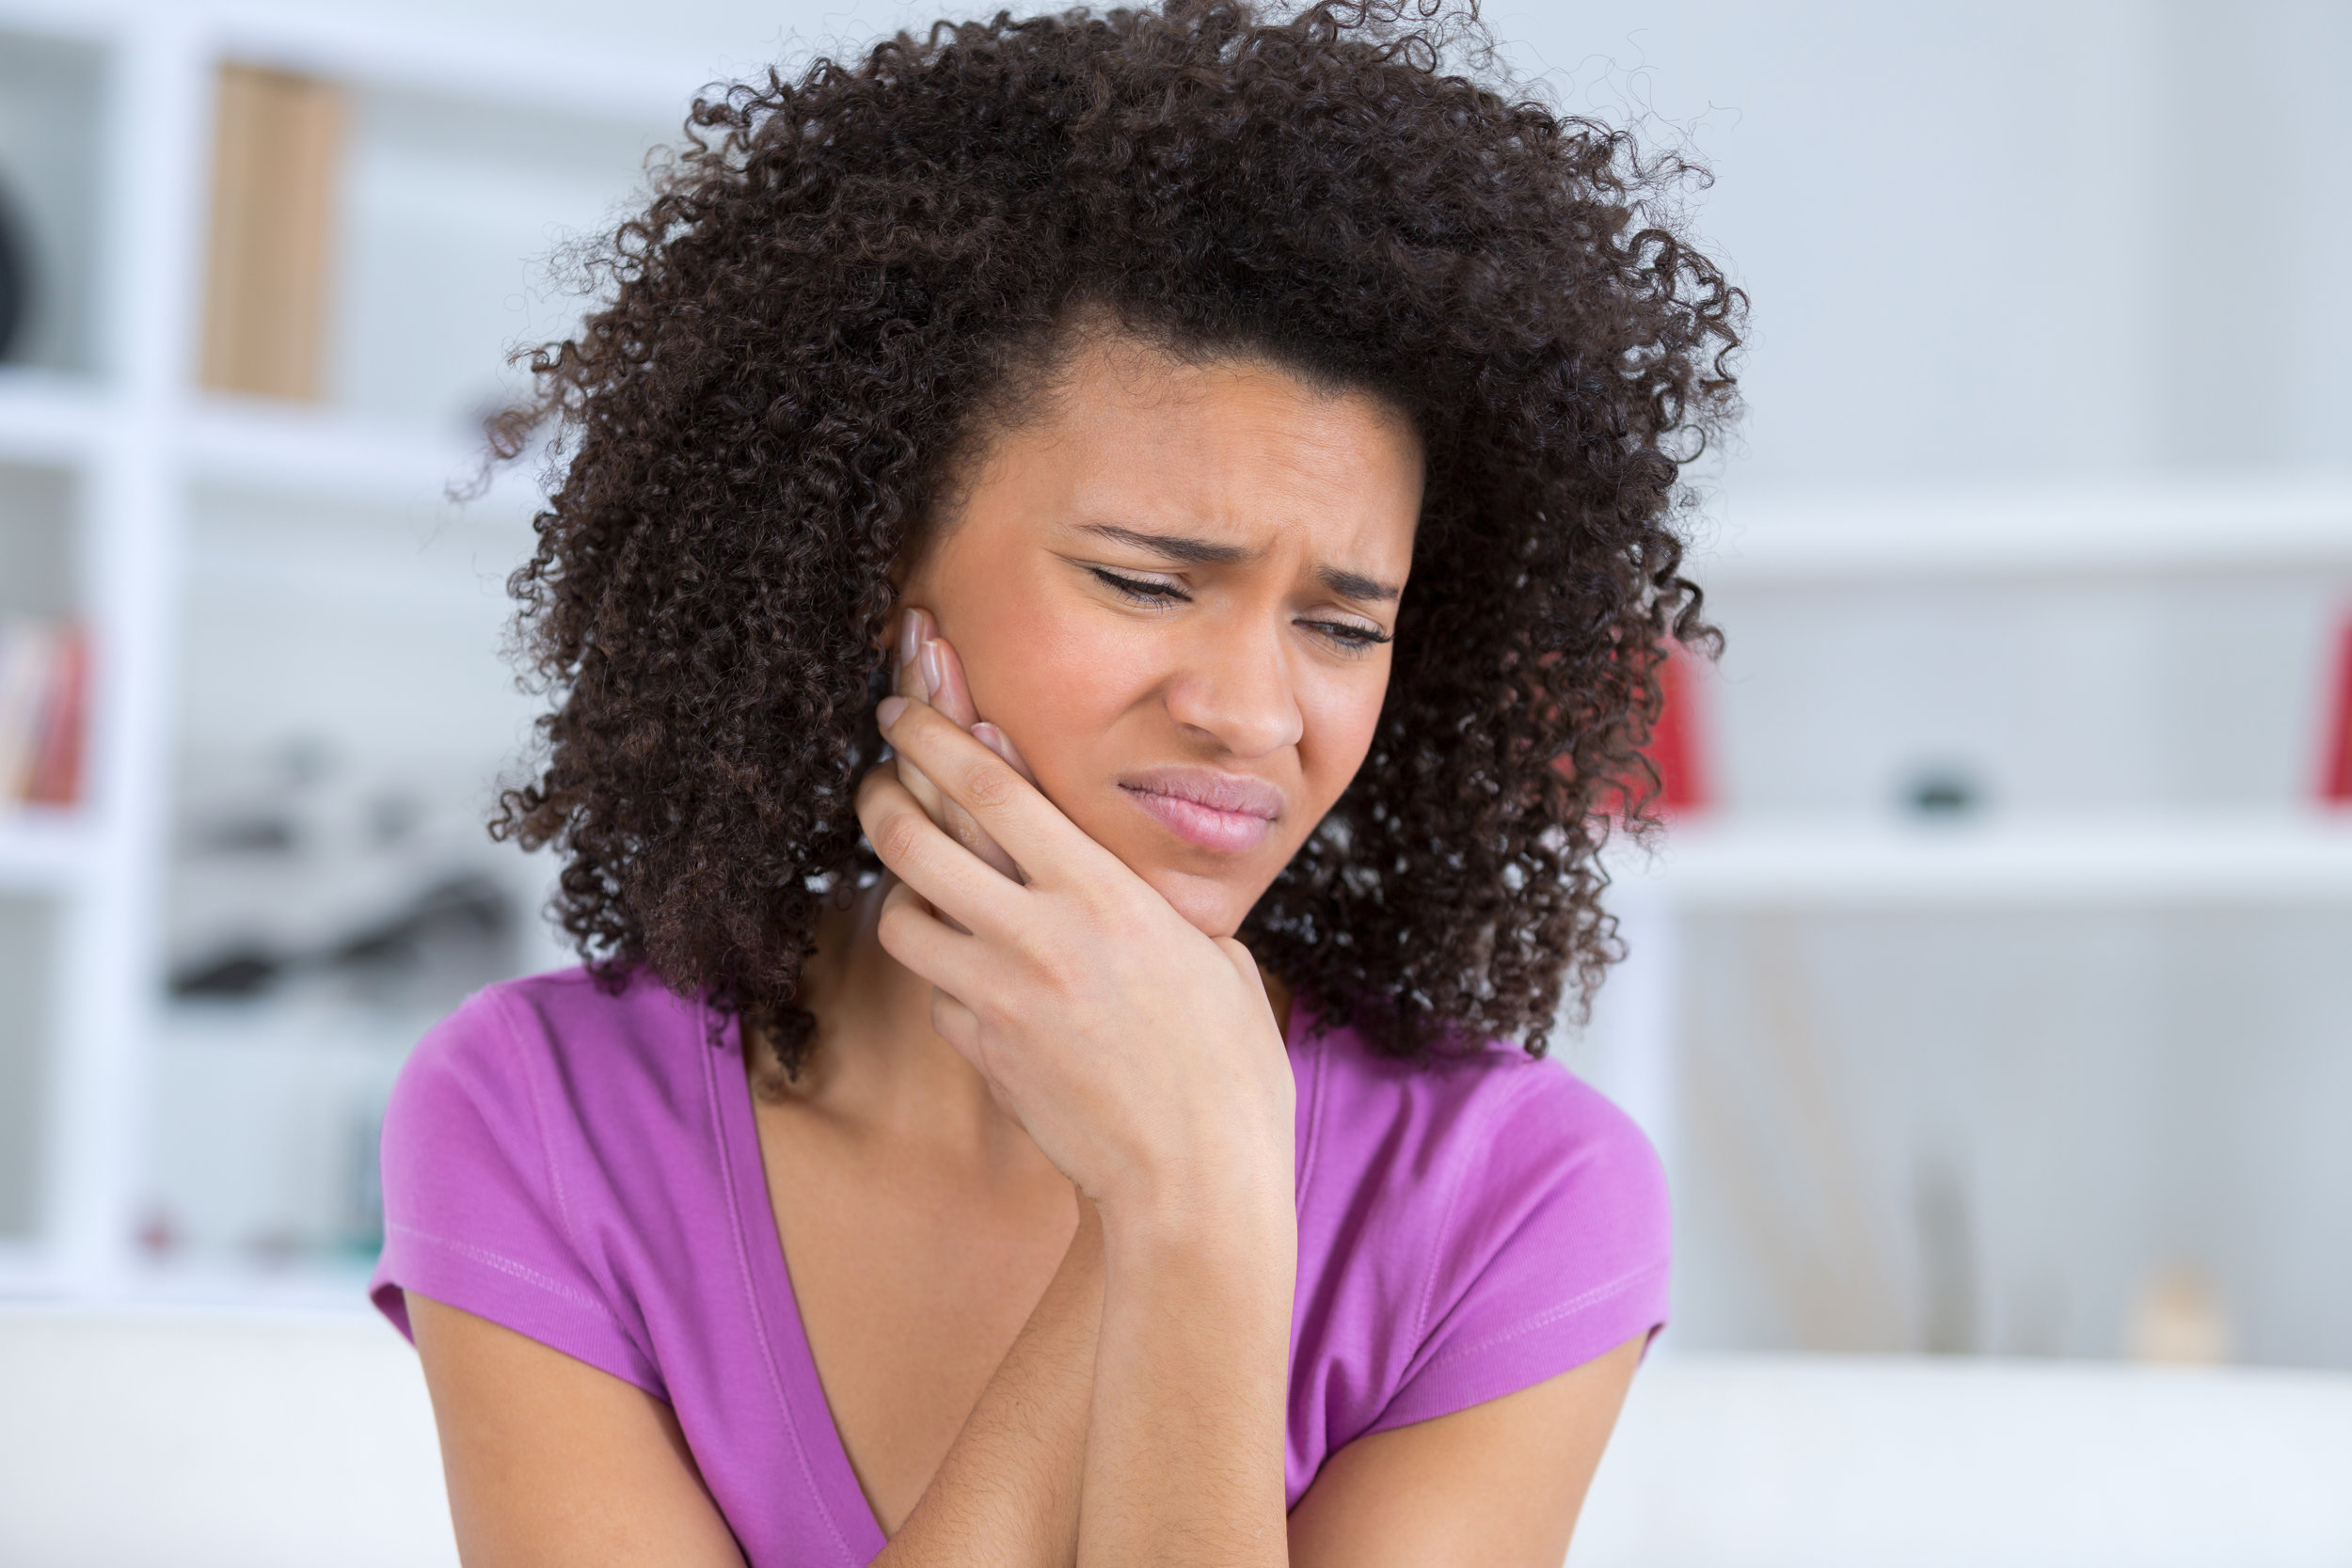 TMJ and Facial Pain - Individuals with a TMJ disorder may experience a variety of symptoms, such as earaches, headaches and limited ability to open their mouth.